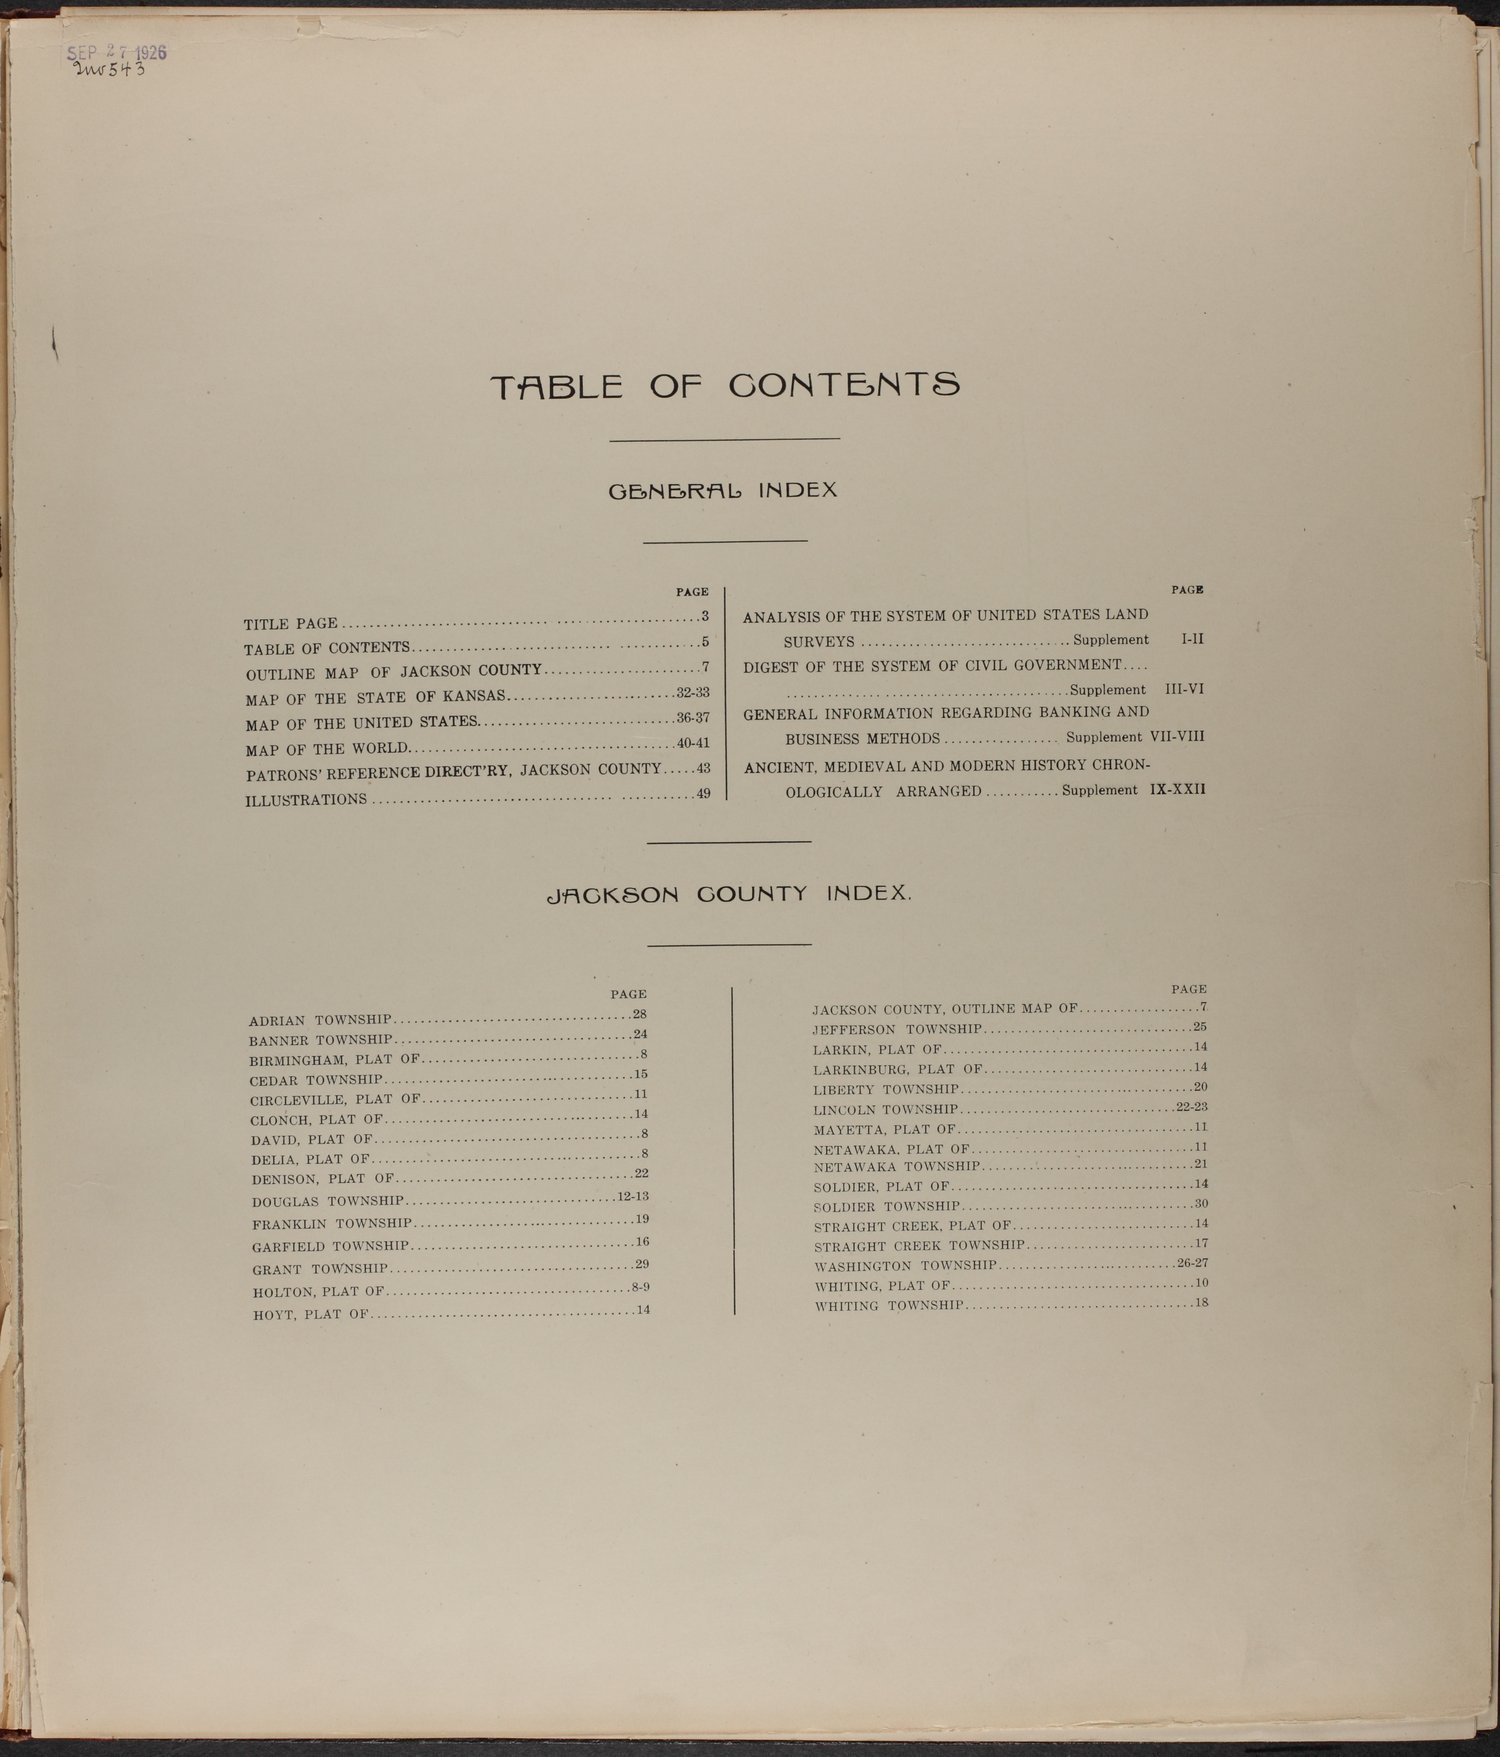 Standard atlas of Jackson County, Kansas - Table of Contents